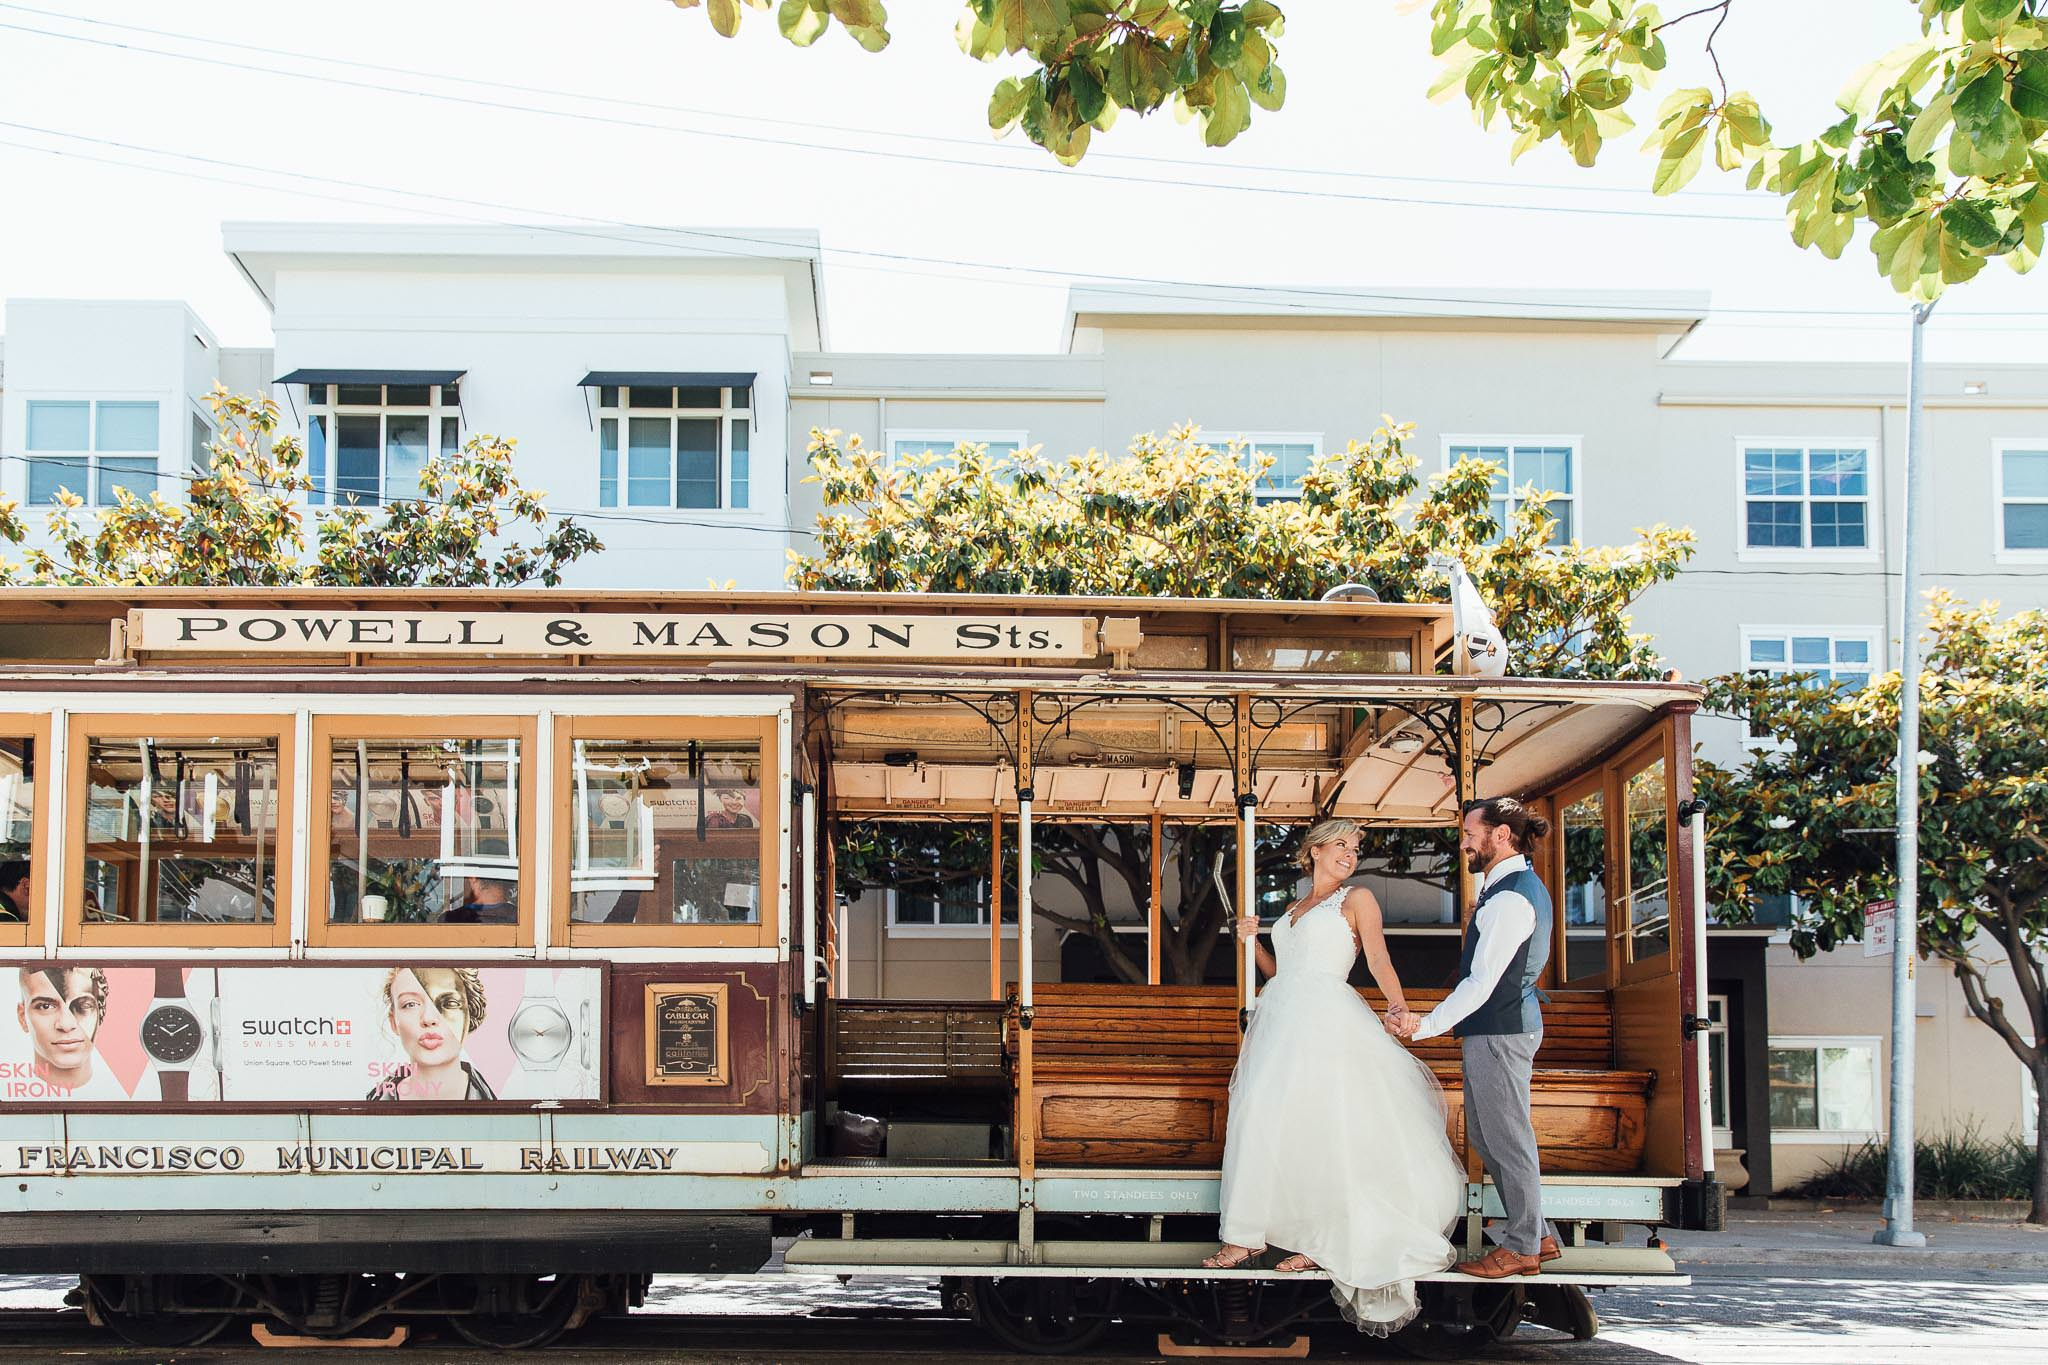 Bride and Groom hold hands and stand on the Powell and Mason Street car in San Francisco